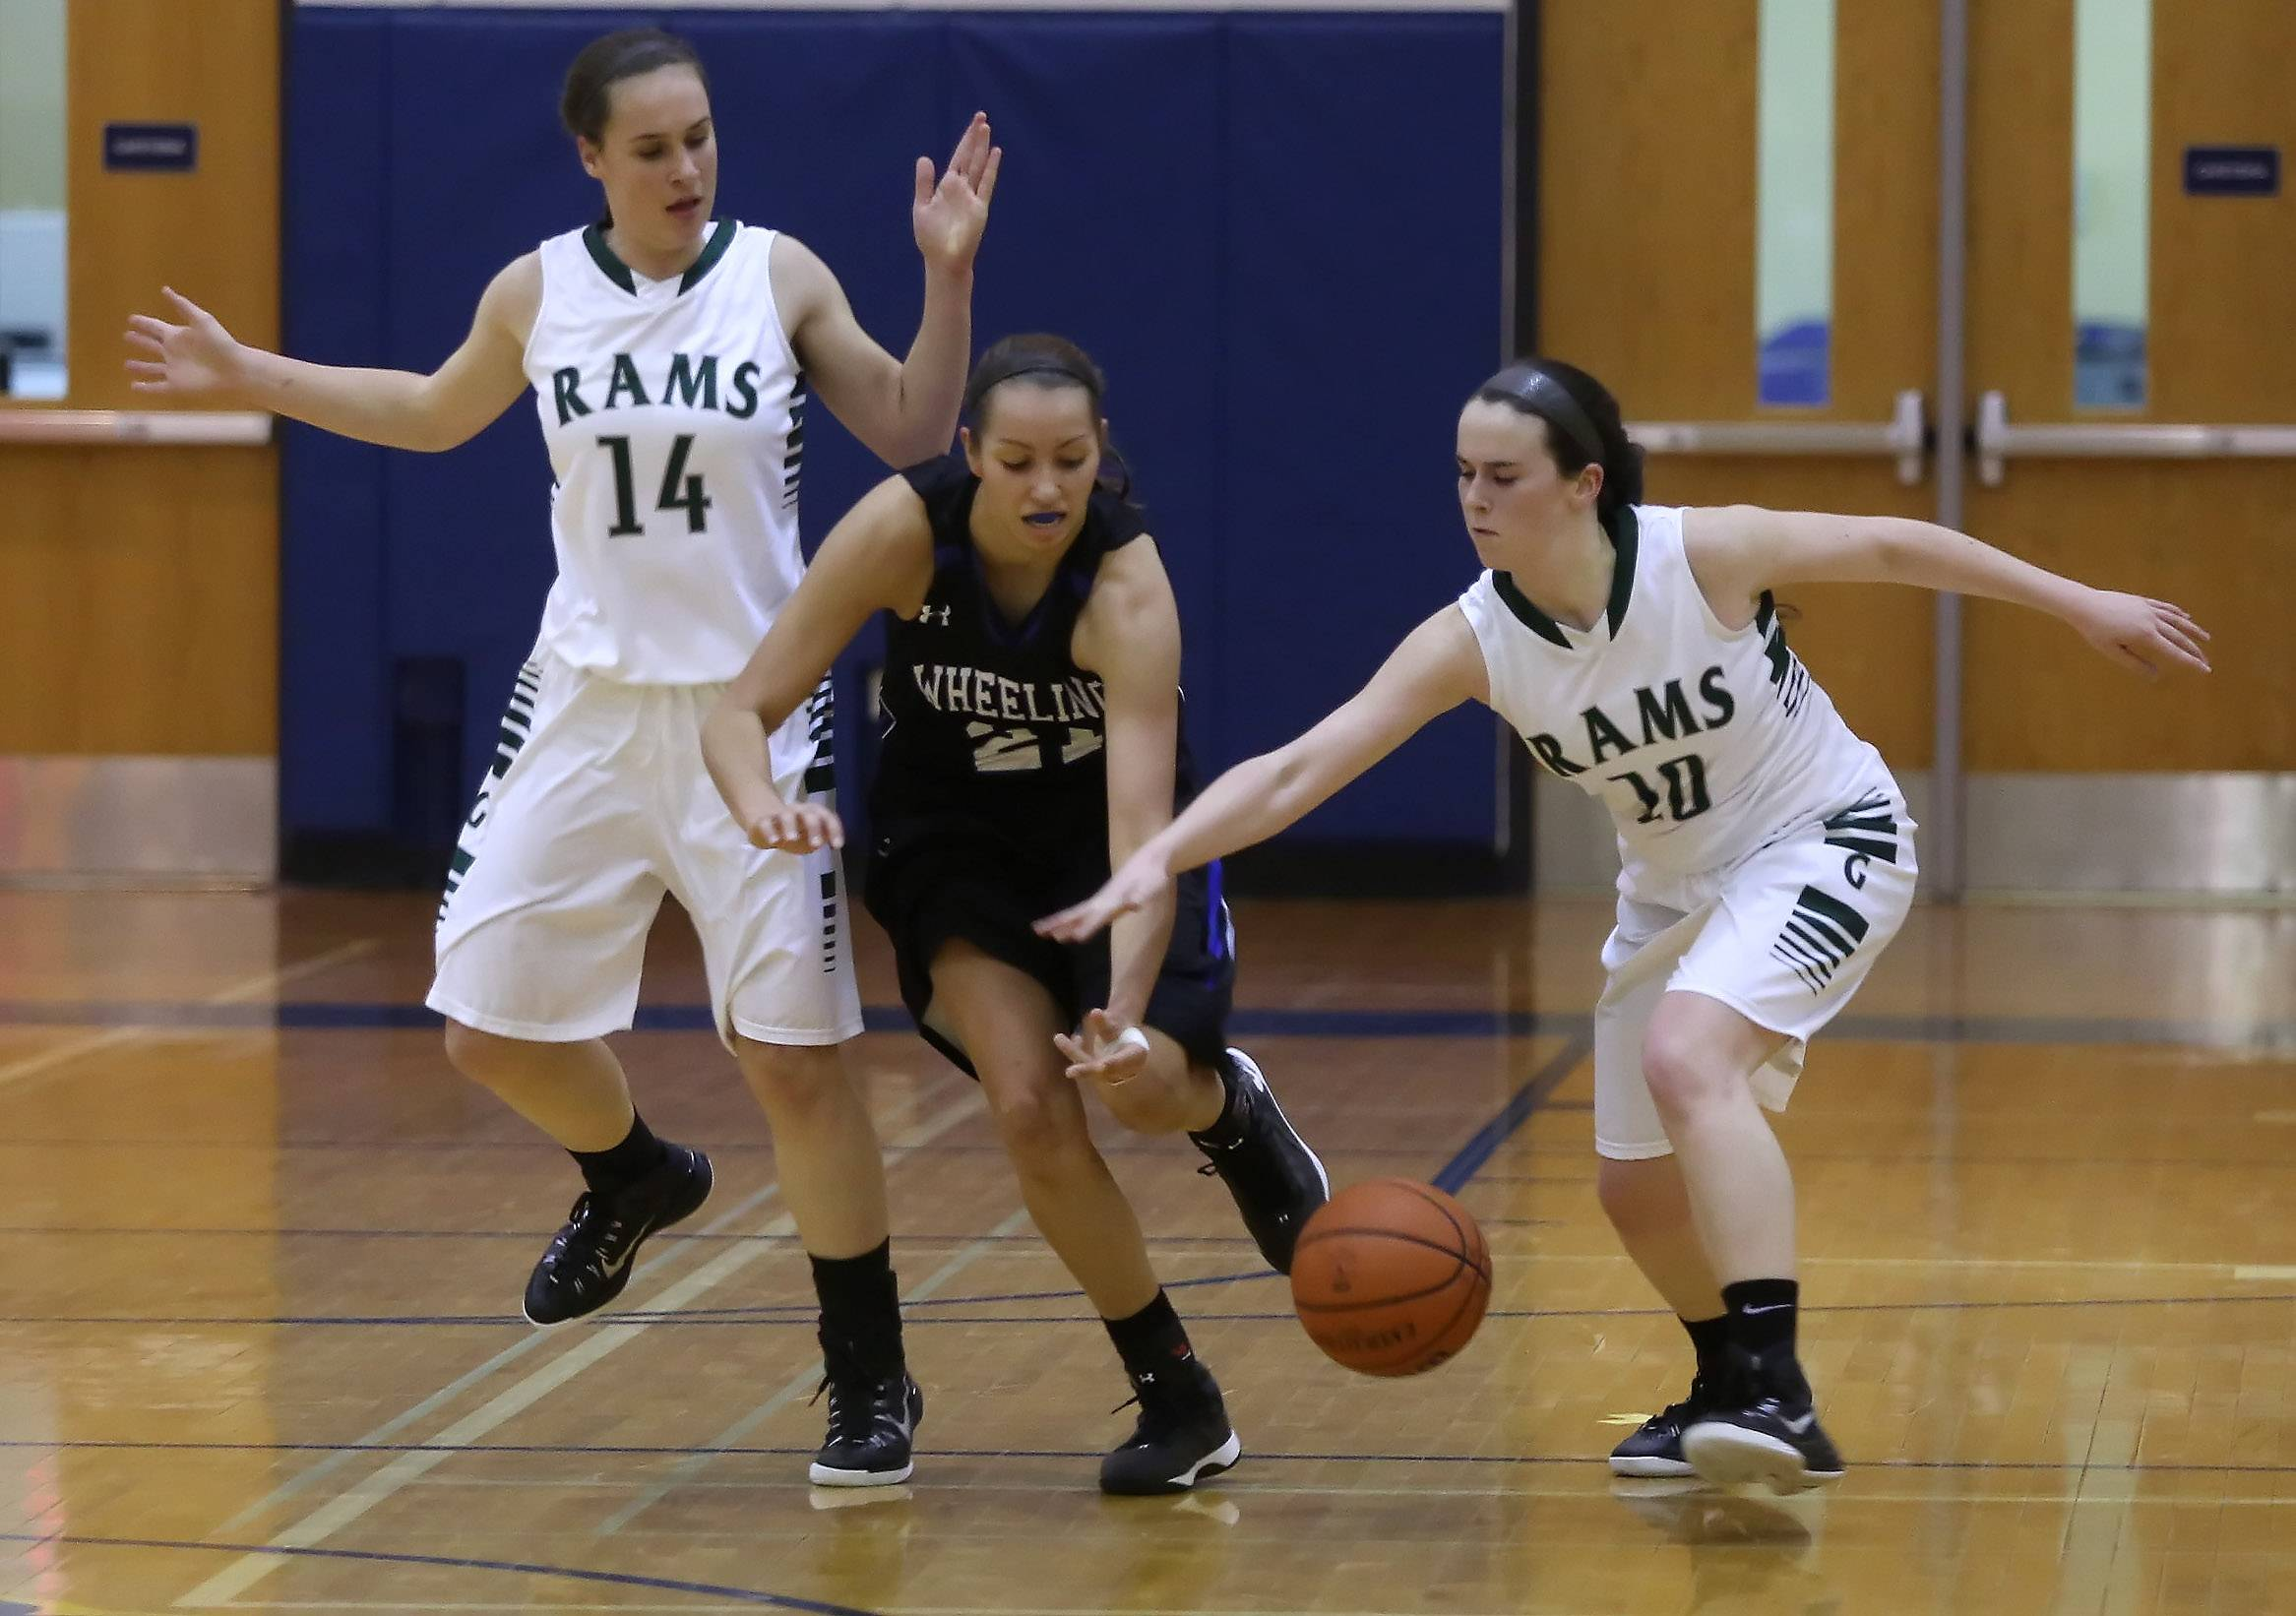 Grayslake Central players Kelly Moroney, right, and Kayley Larson battle Wheeling player Deanna Kuzmanic for a loose ball.